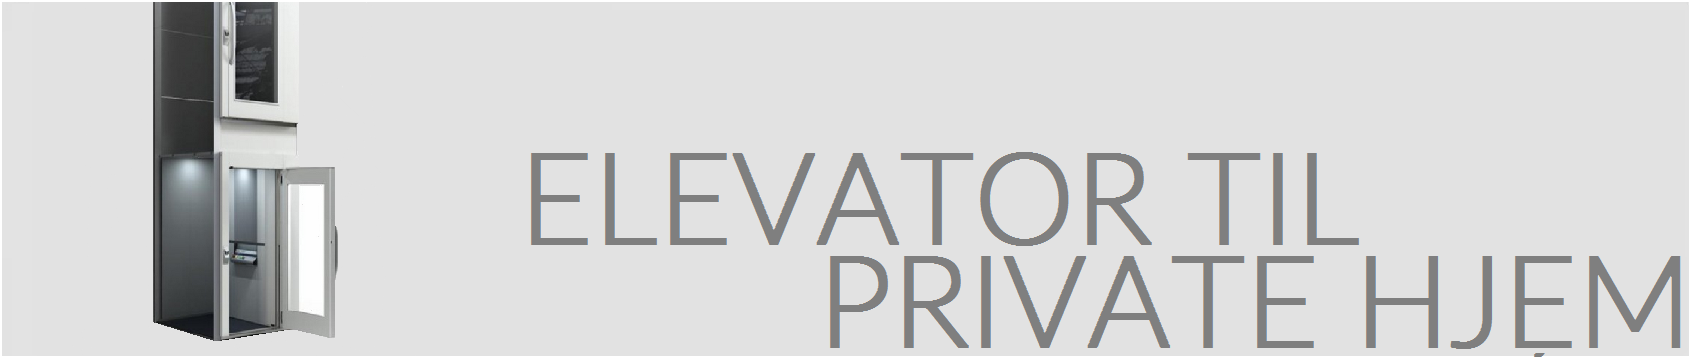 Elevator til private hjem